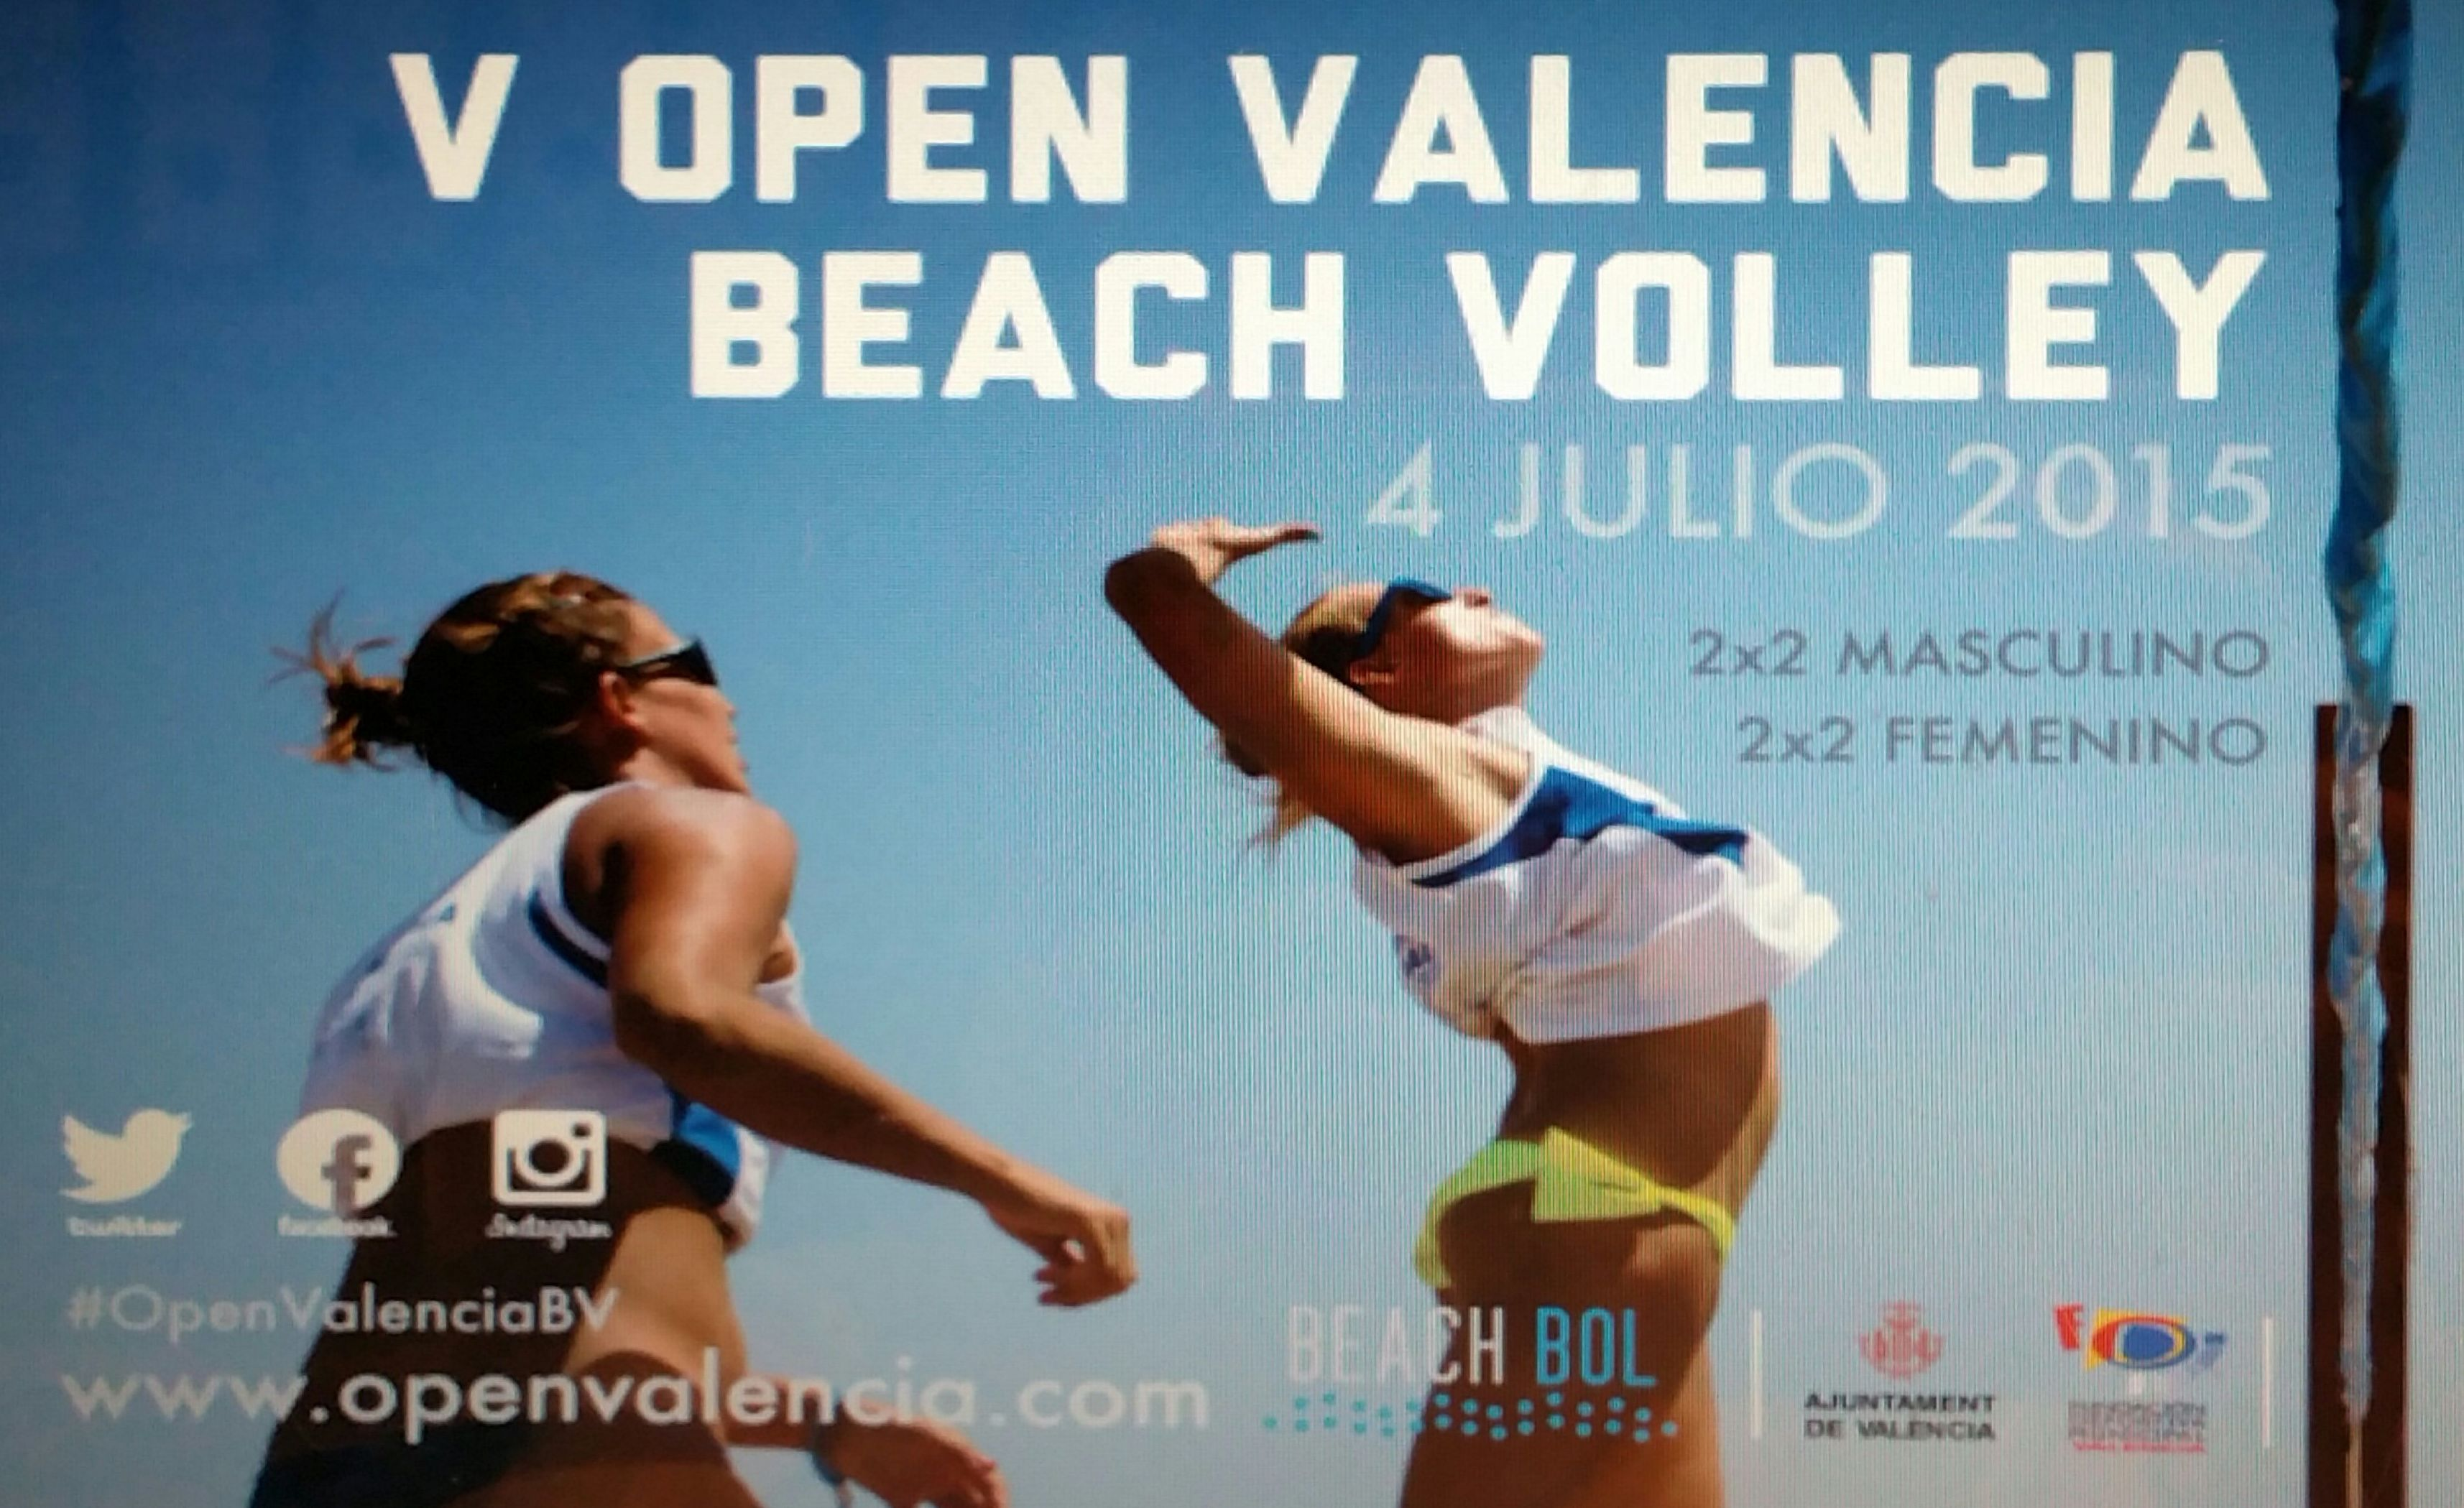 Ches Pa, colaborador V OPEN VALENCIA BEACH VOLLEY